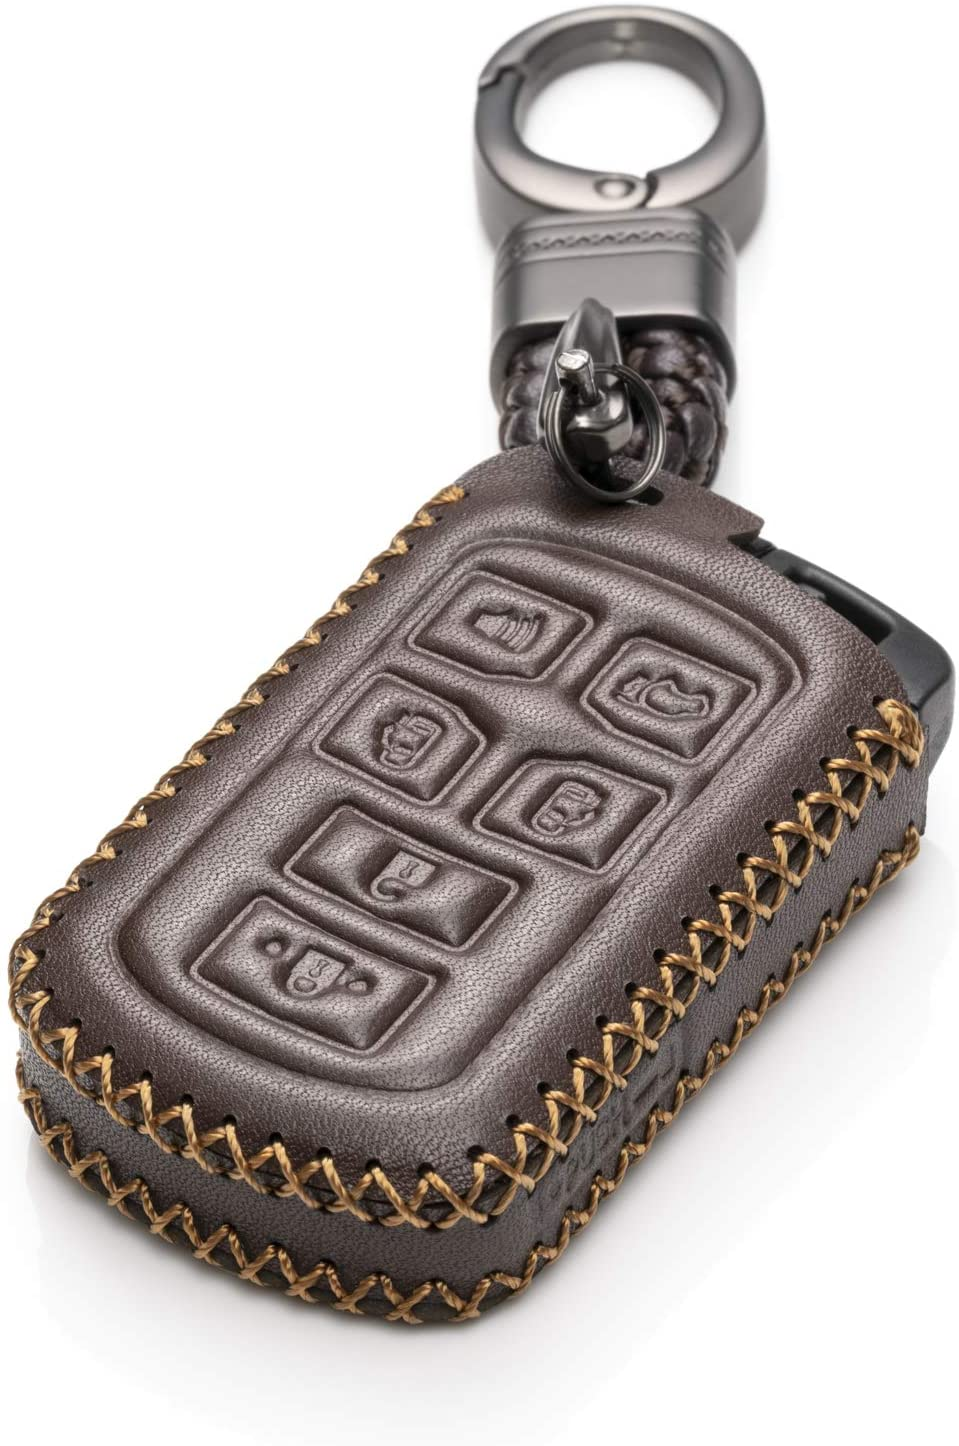 Vitodeco Discount is also underway Rare Genuine Leather Smart Key Keyless Entry Fob Case Remote